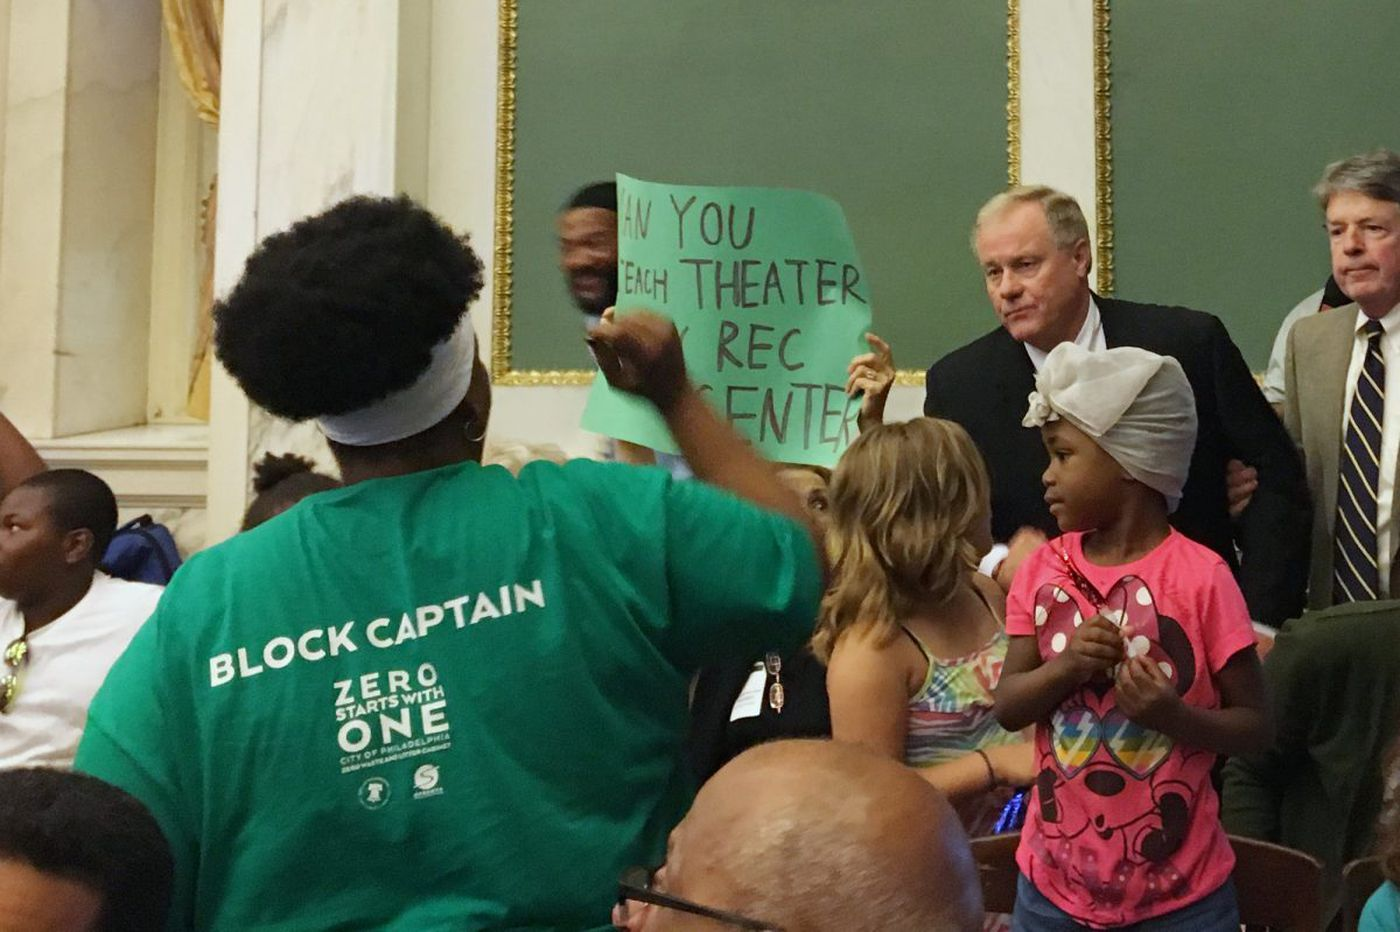 Pa. Senate hearing on soda tax drowned out by protest